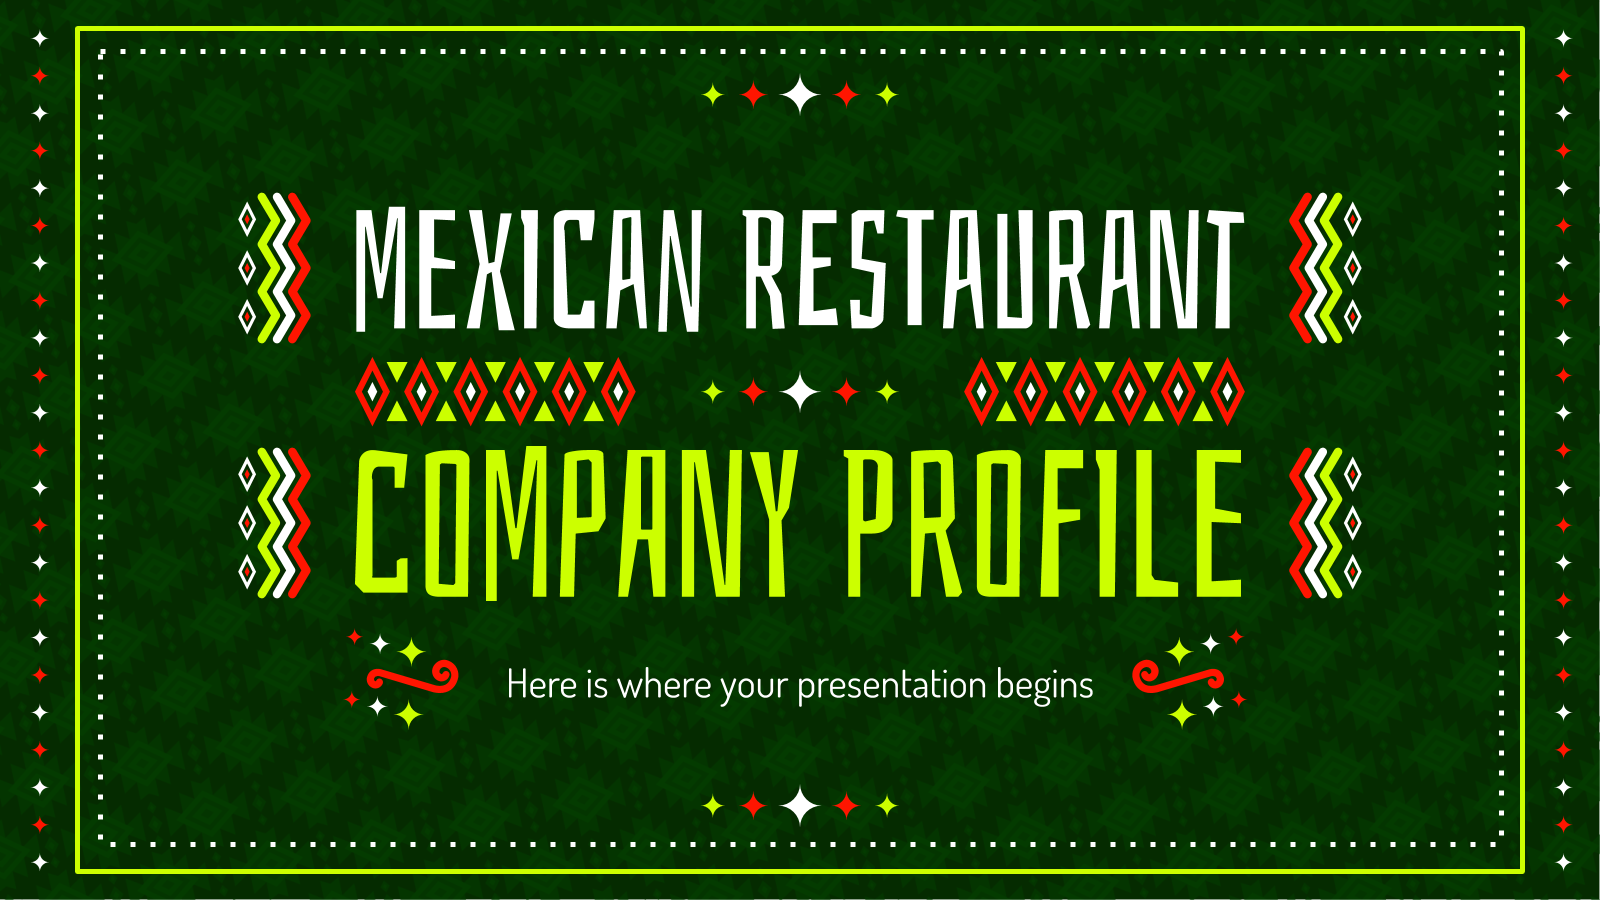 Mexican Restaurant Company Profile presentation template